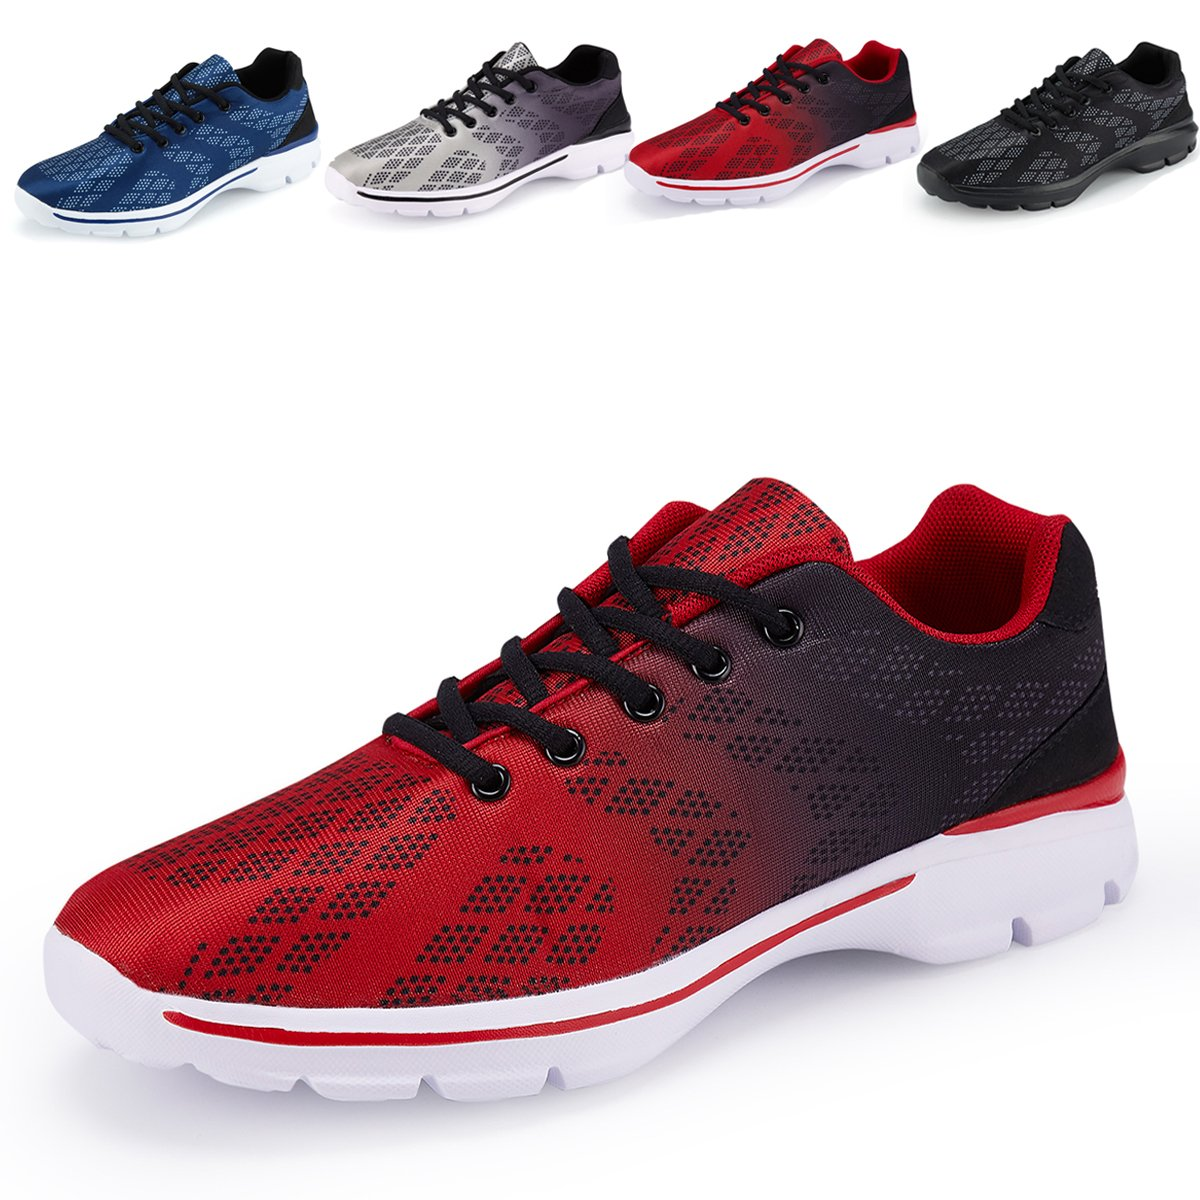 Men's Lightweight Breathable Running Tennis Sneakers Casual Walking Shoes (US 9/EU 42, Red) by Caitin